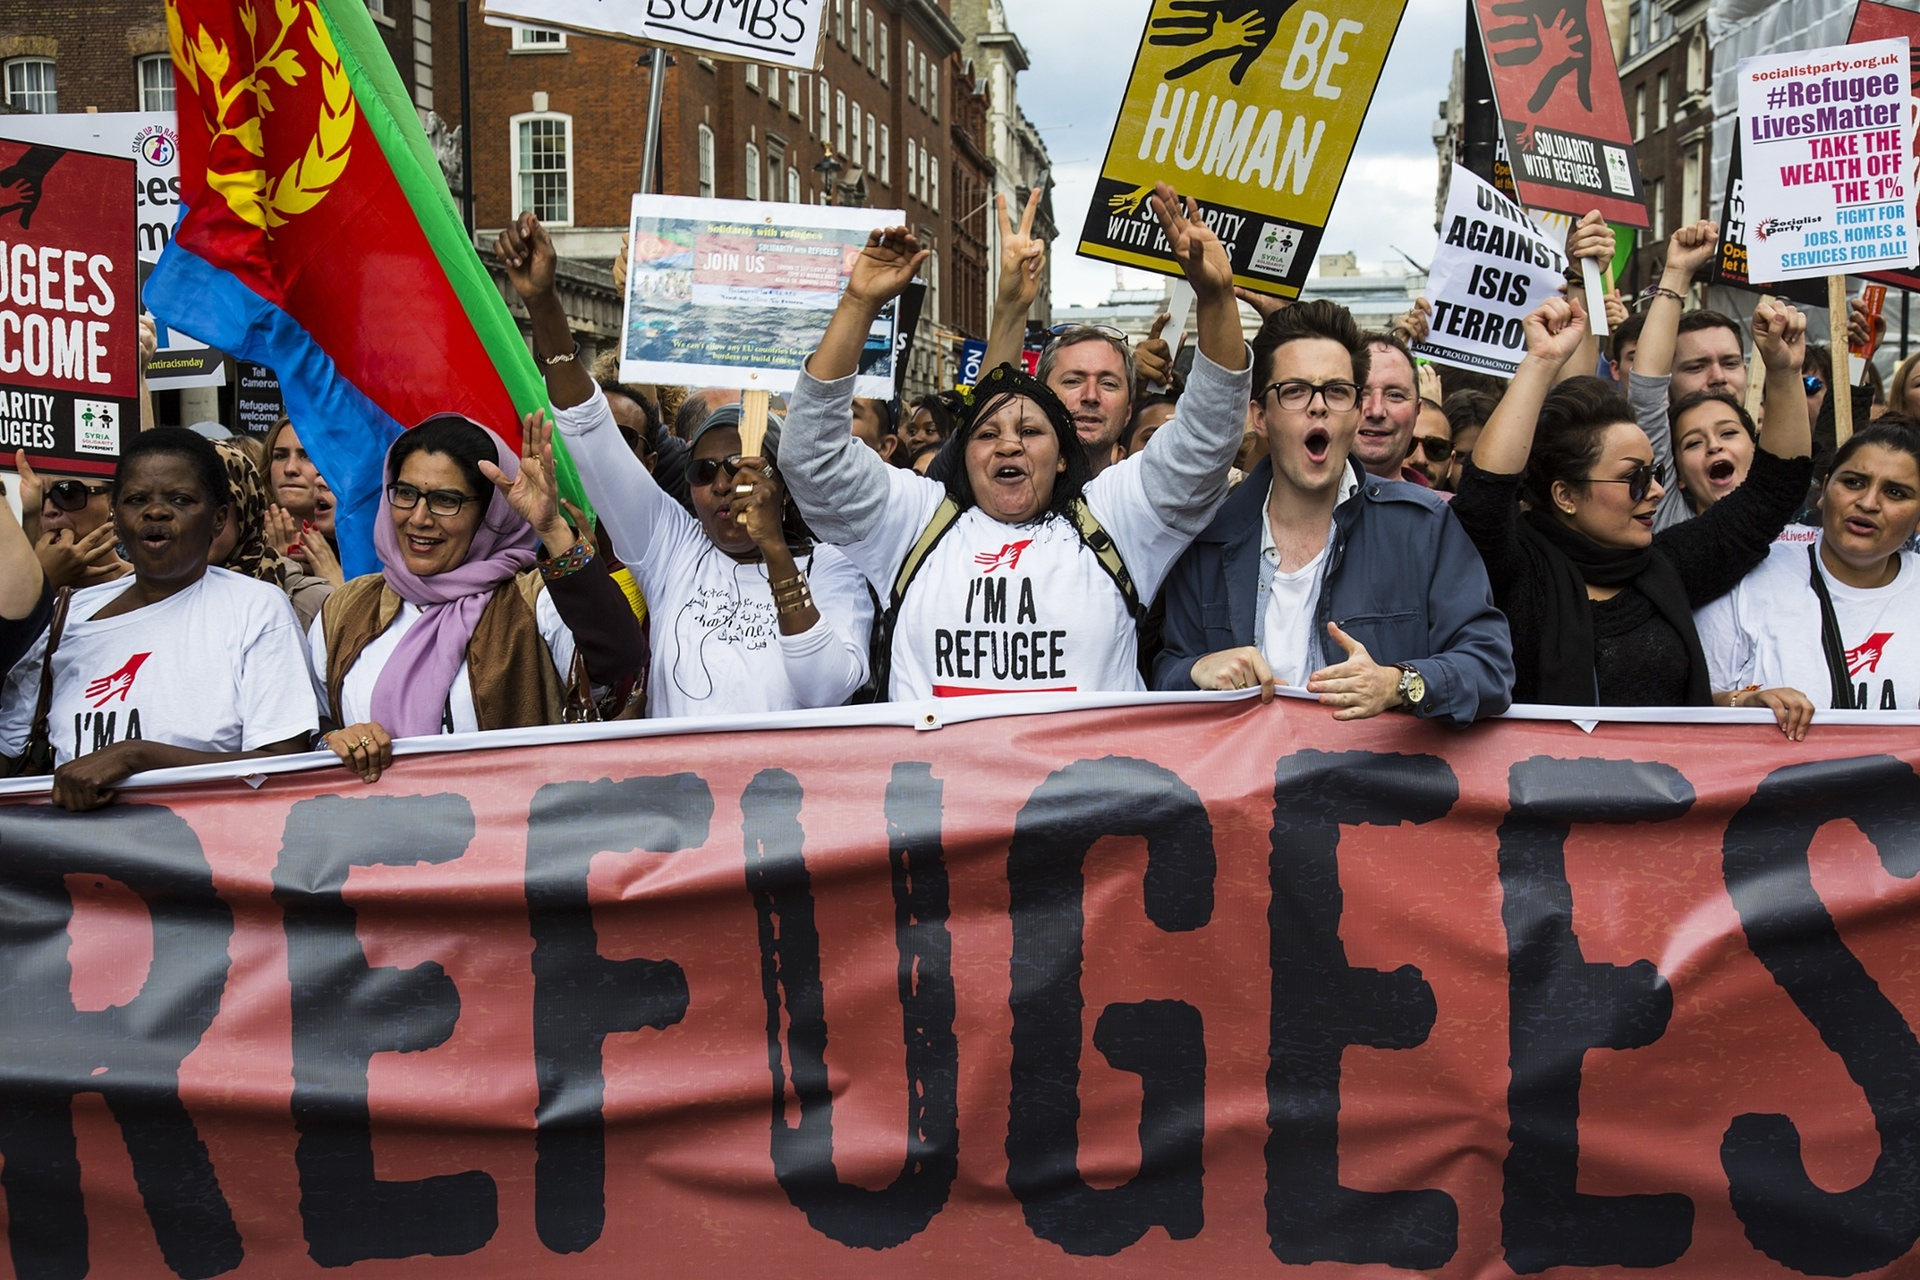 Protesters behind a banner chant as thousands march in central London, declaring that refugees are welcome in the UK Photograph: redorbital/Demotix/Corbis